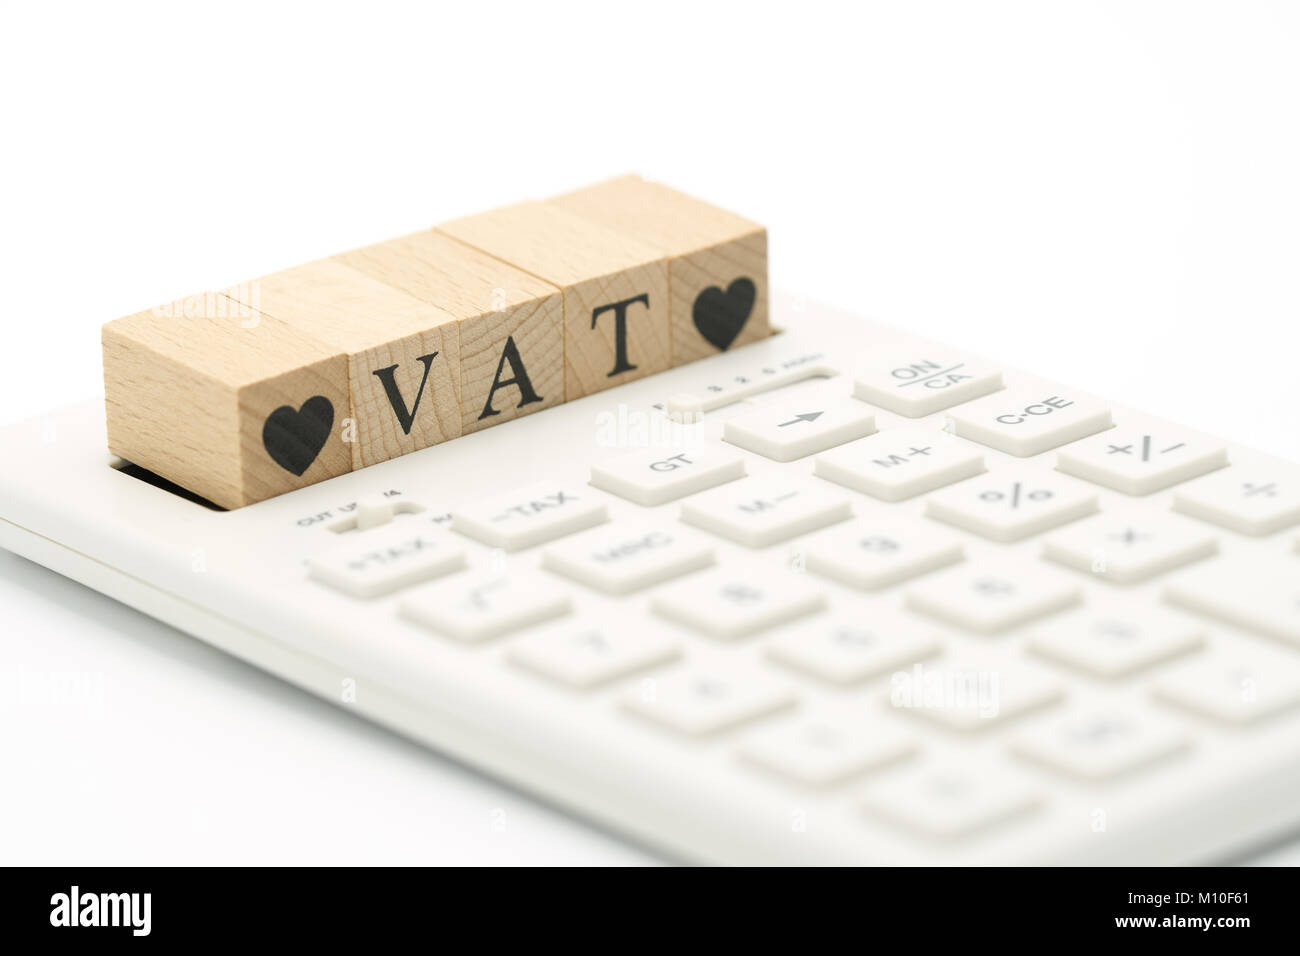 Wood word VAT and Wood Heart placed on a white calculator as background finance concept and business concept with - Stock Image